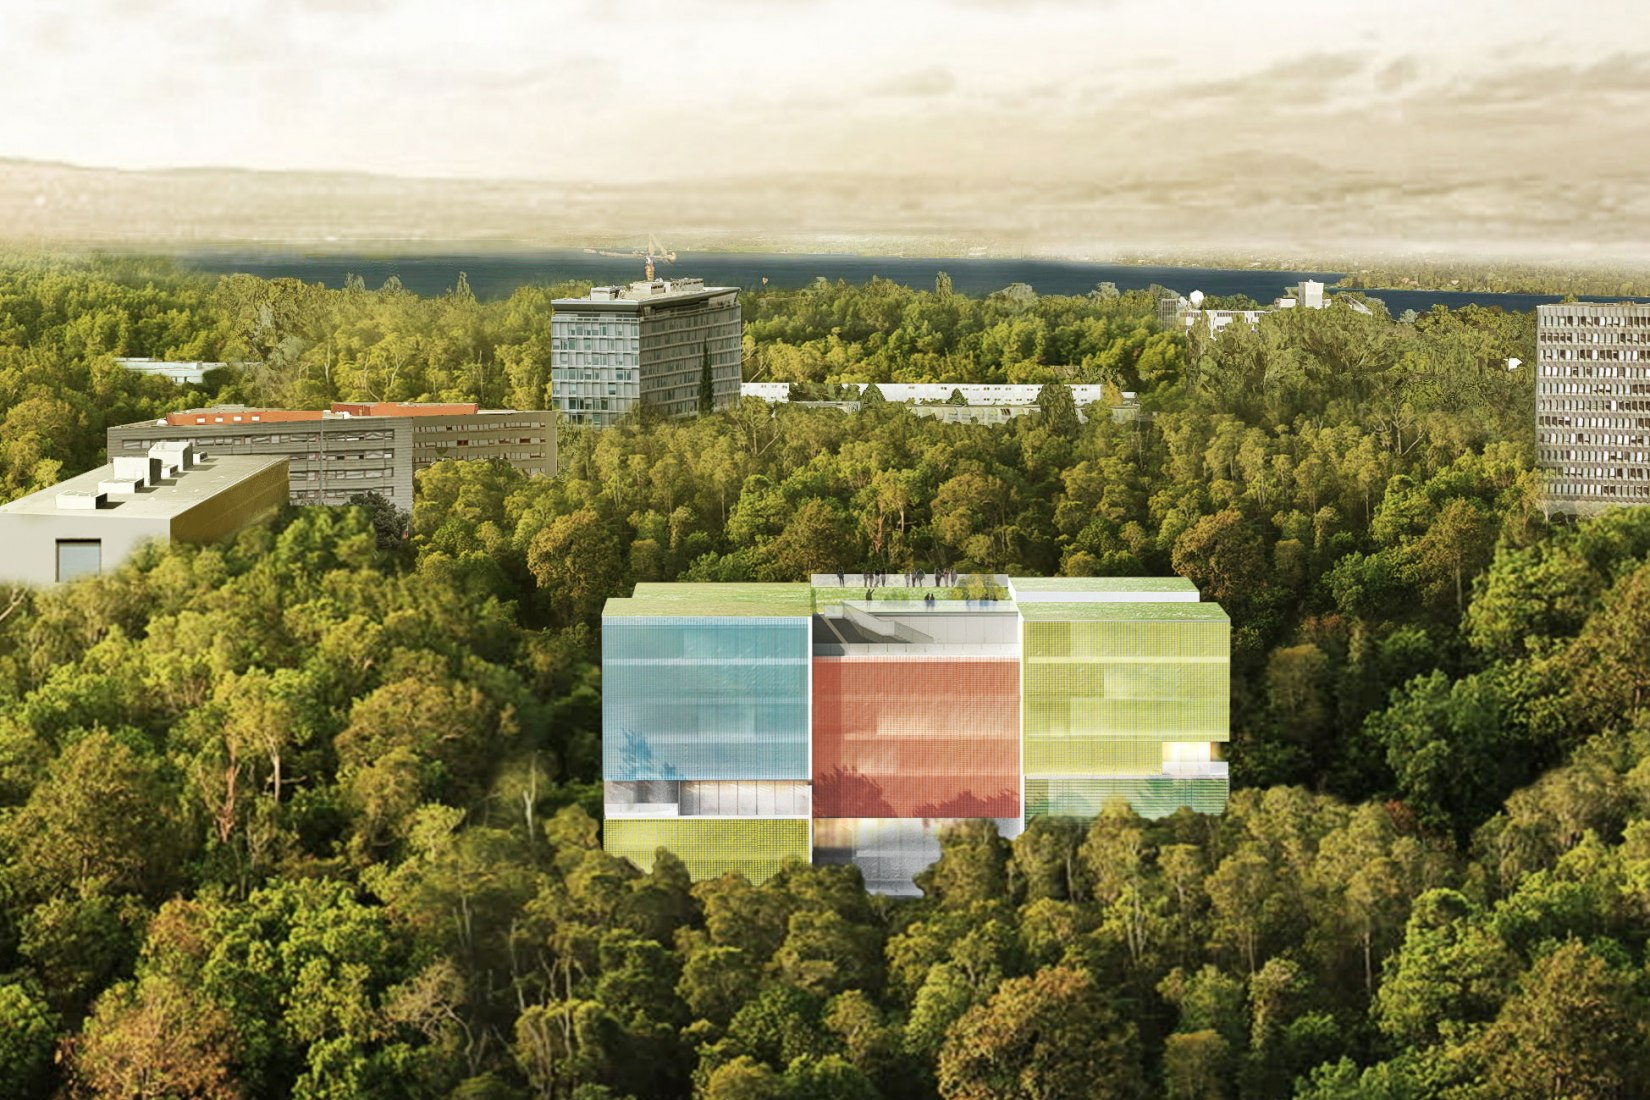 Overview. New Médecins sans Frontières Headquarters by Steven Holl Architects